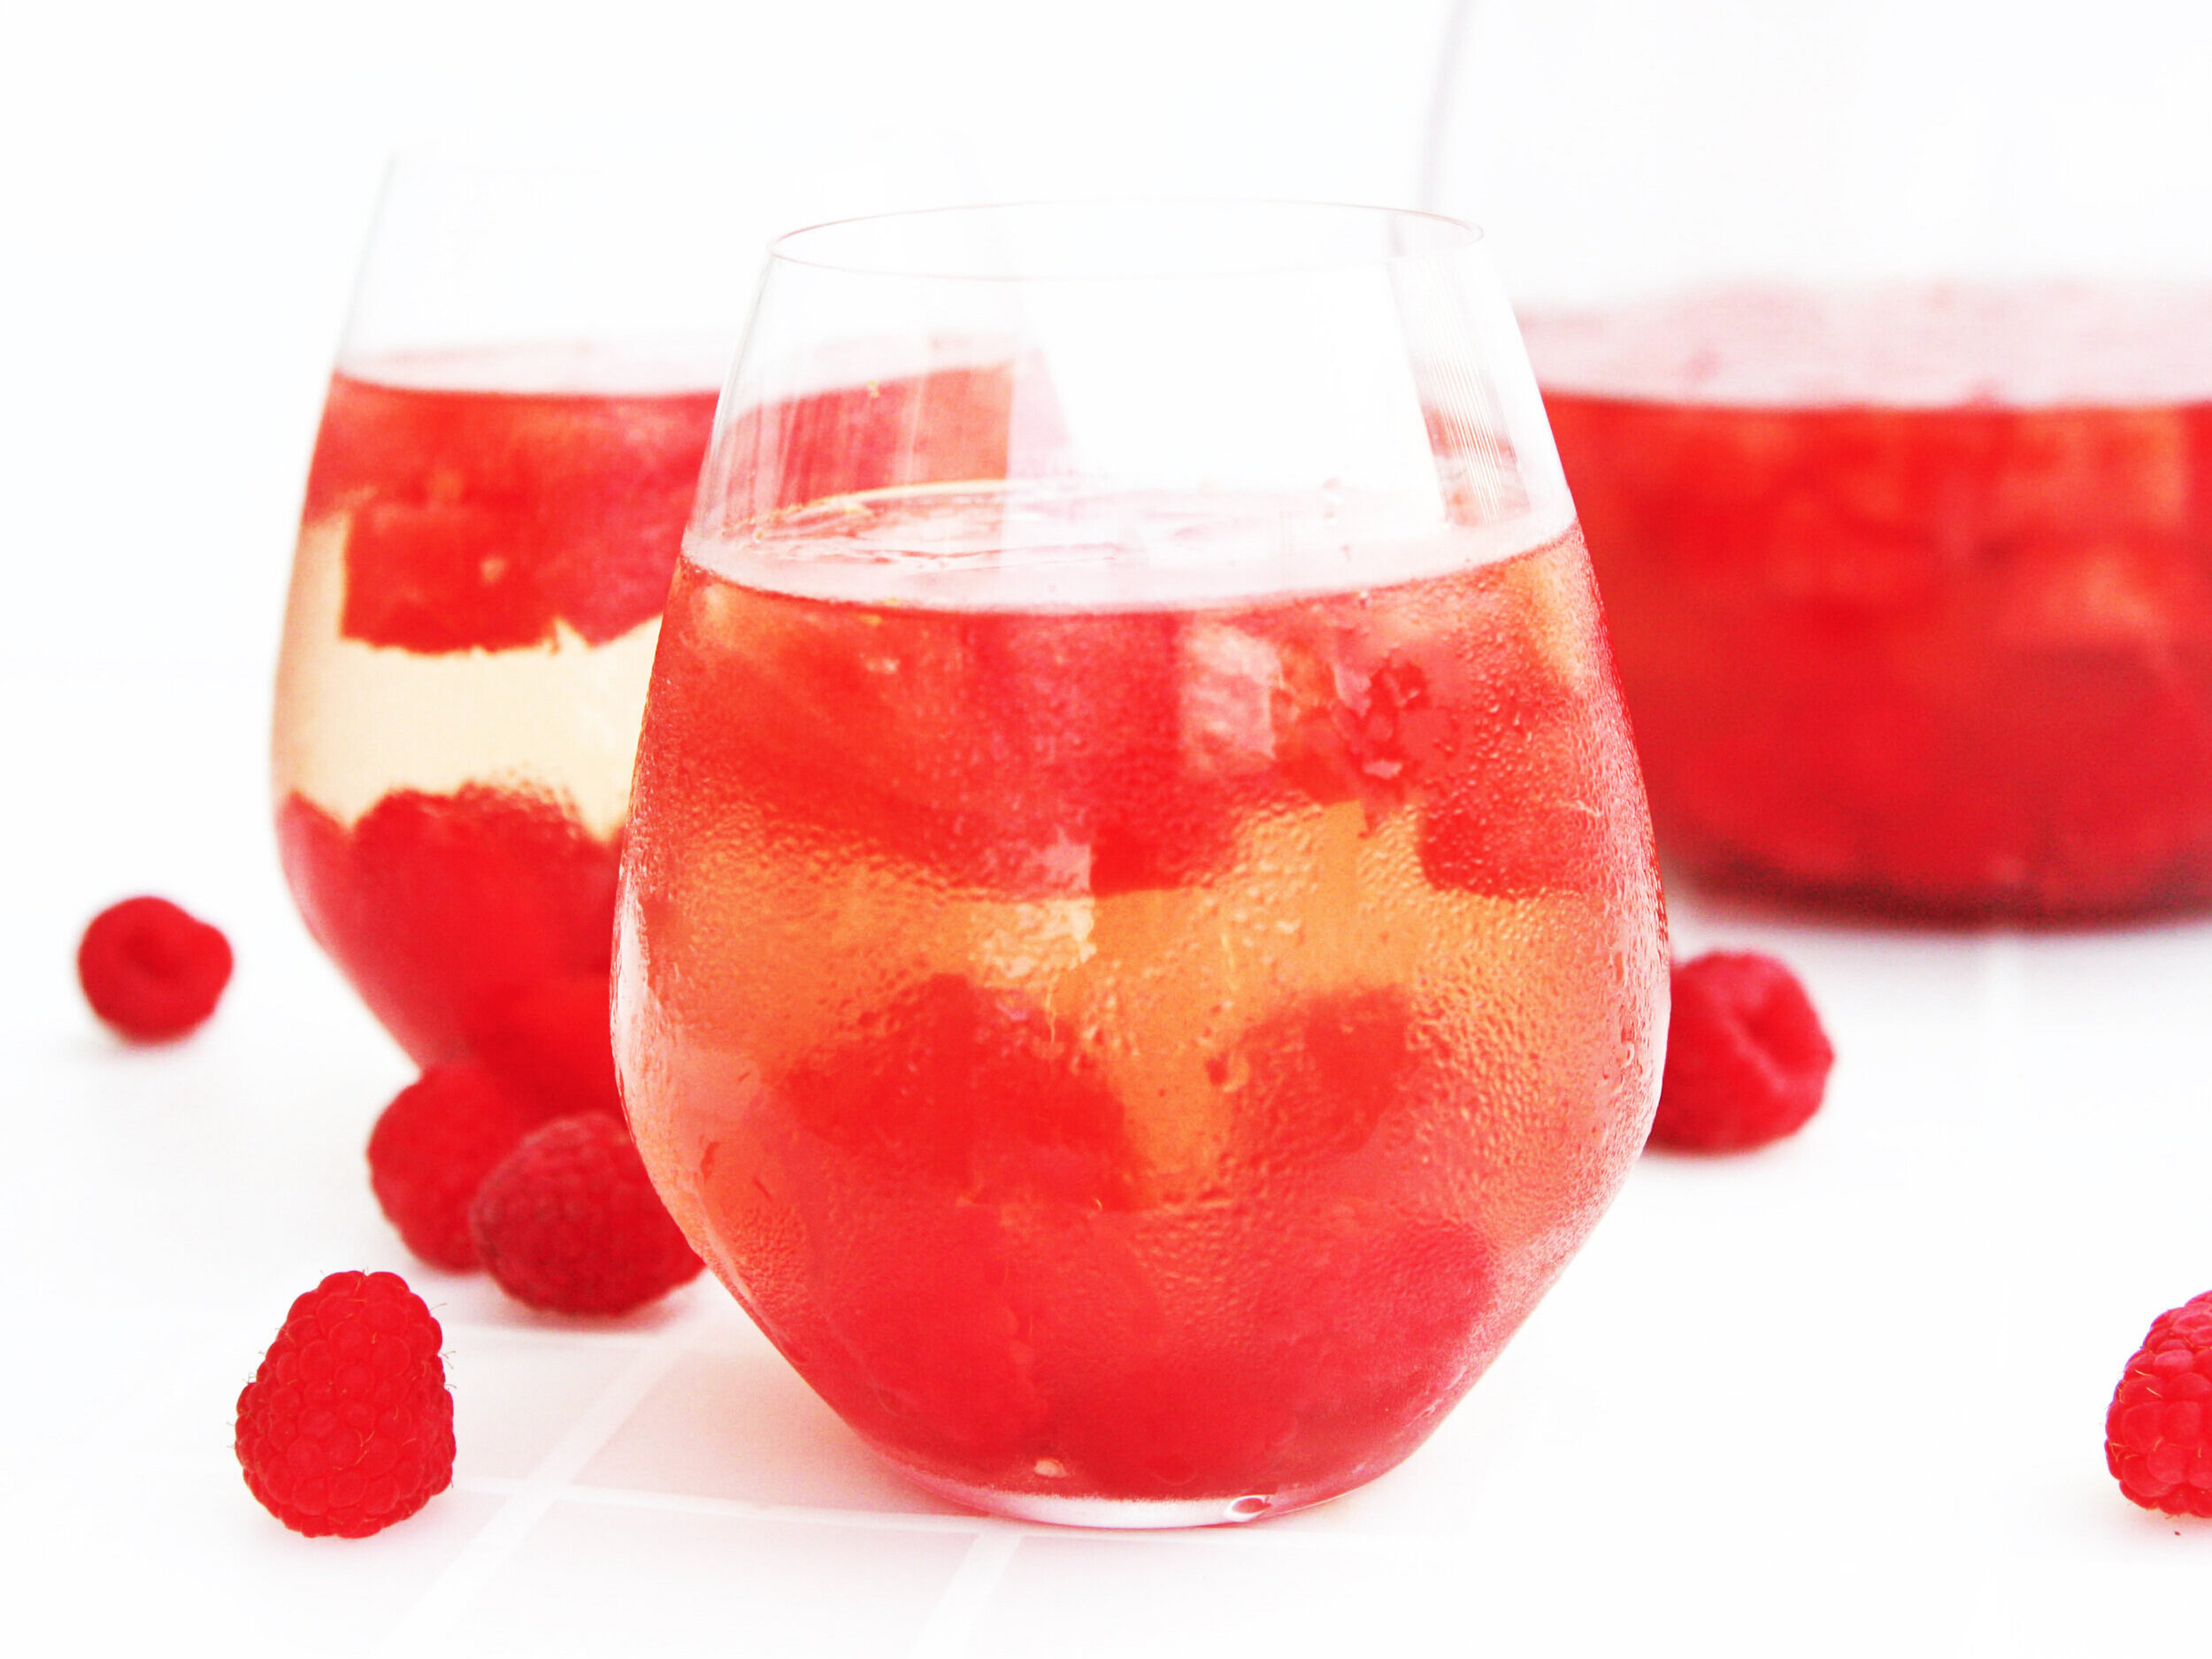 two glasses of raspberry sangria with raspberries inside